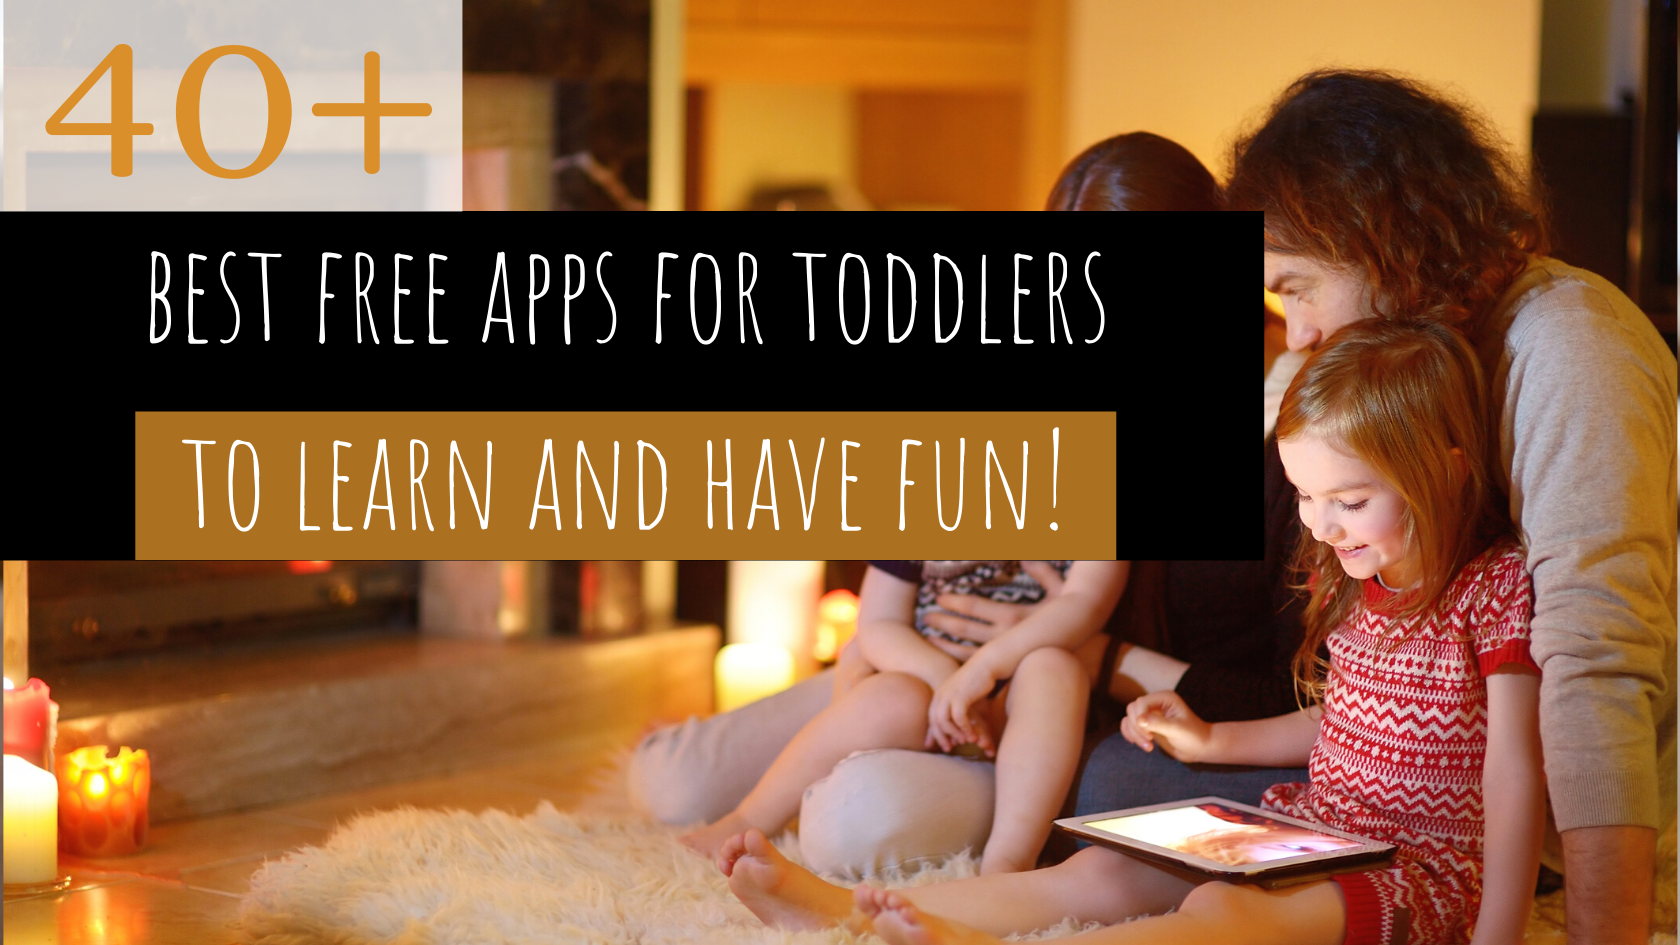 40+ Best Free Apps for Toddlers to Have Fun and Learn